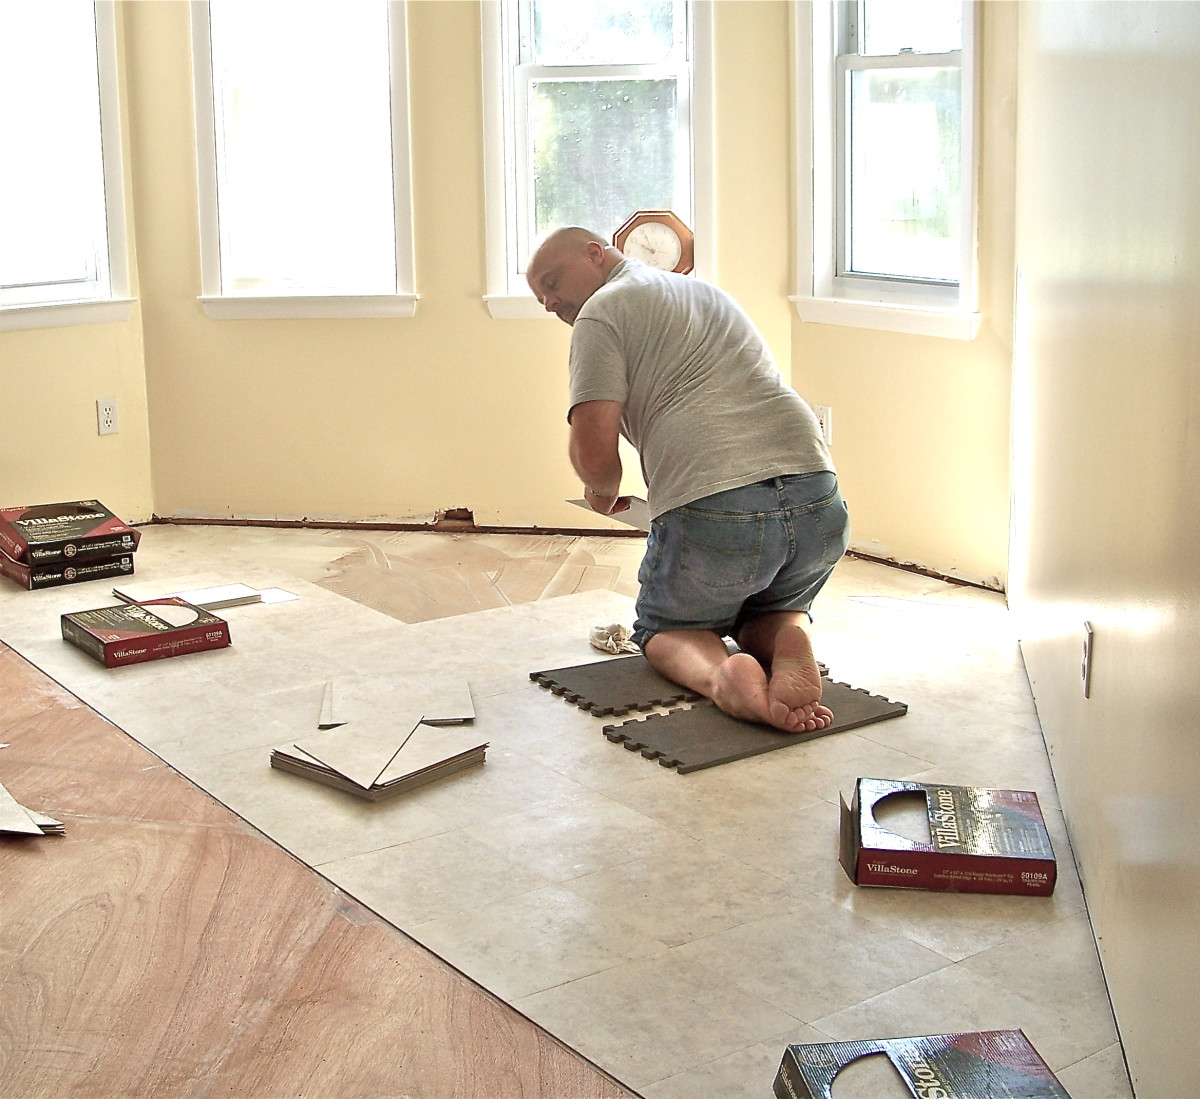 Kitchen Floor in Progress - We decided to lay tiles at an angle. Here my son Jeff is laying the floor tiles.